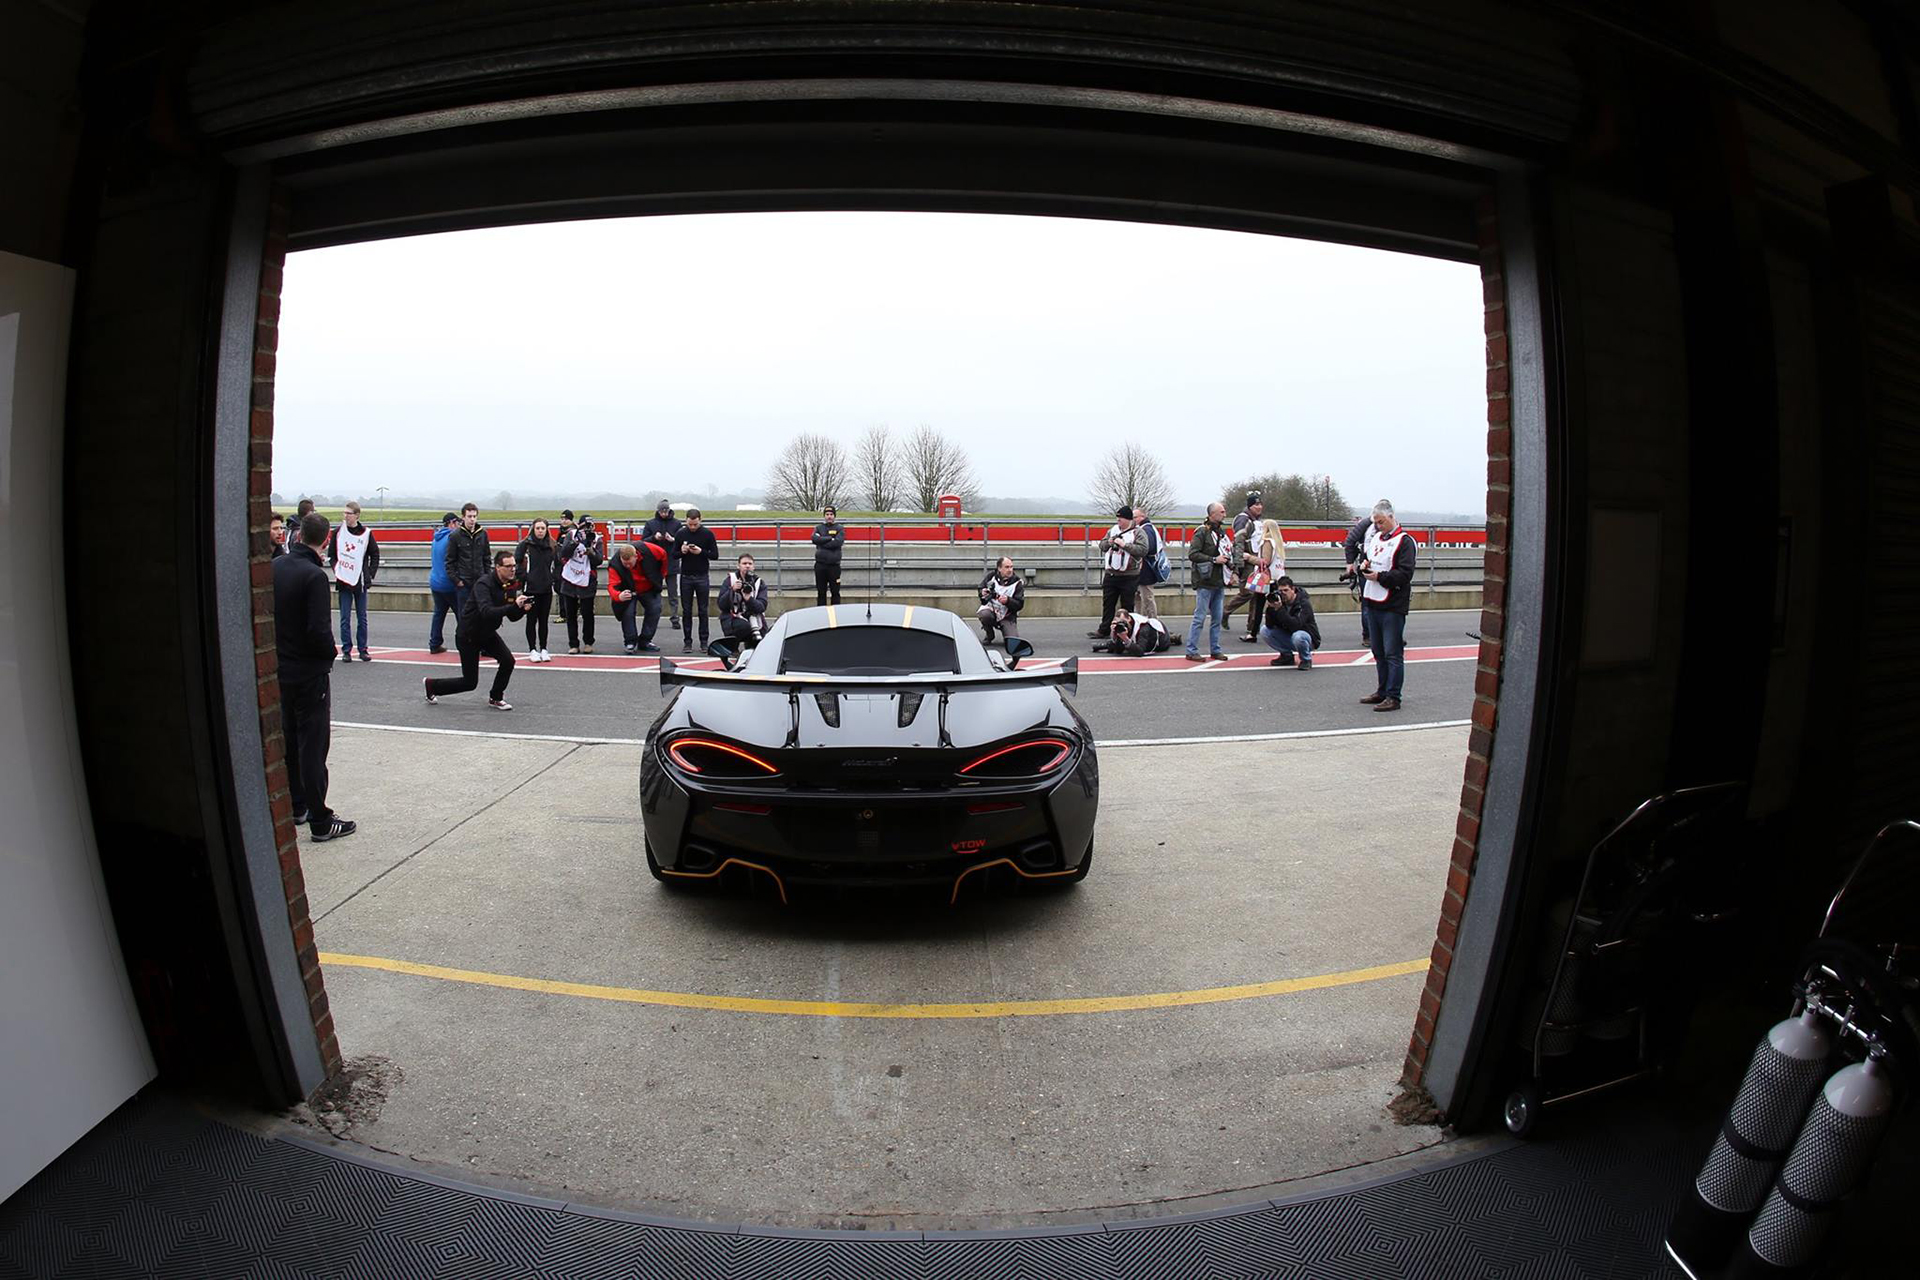 McLaren 570S GT4 - rear / arrière - 2016 - on track - Photo via British GT Championship